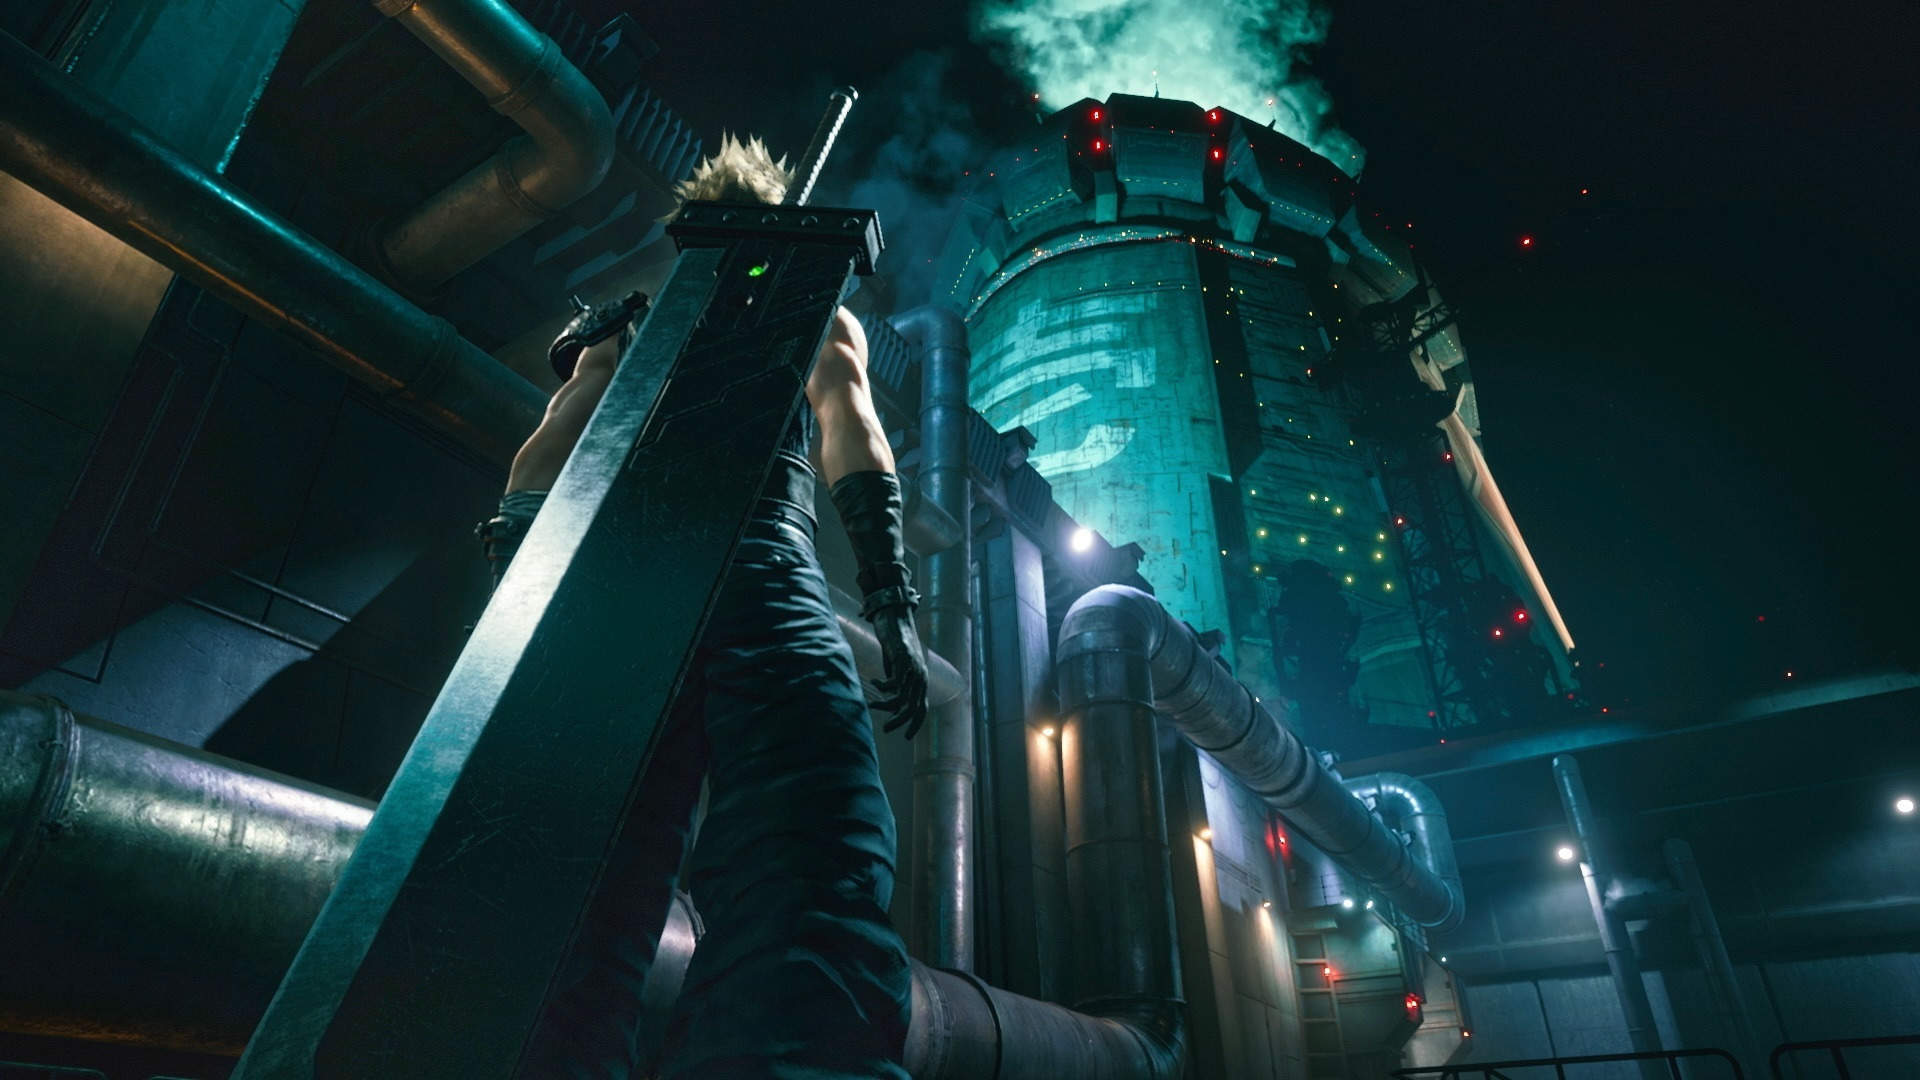 Midgar Focus | What We Already Know About the Final Fantasy VII Remake | Gammicks